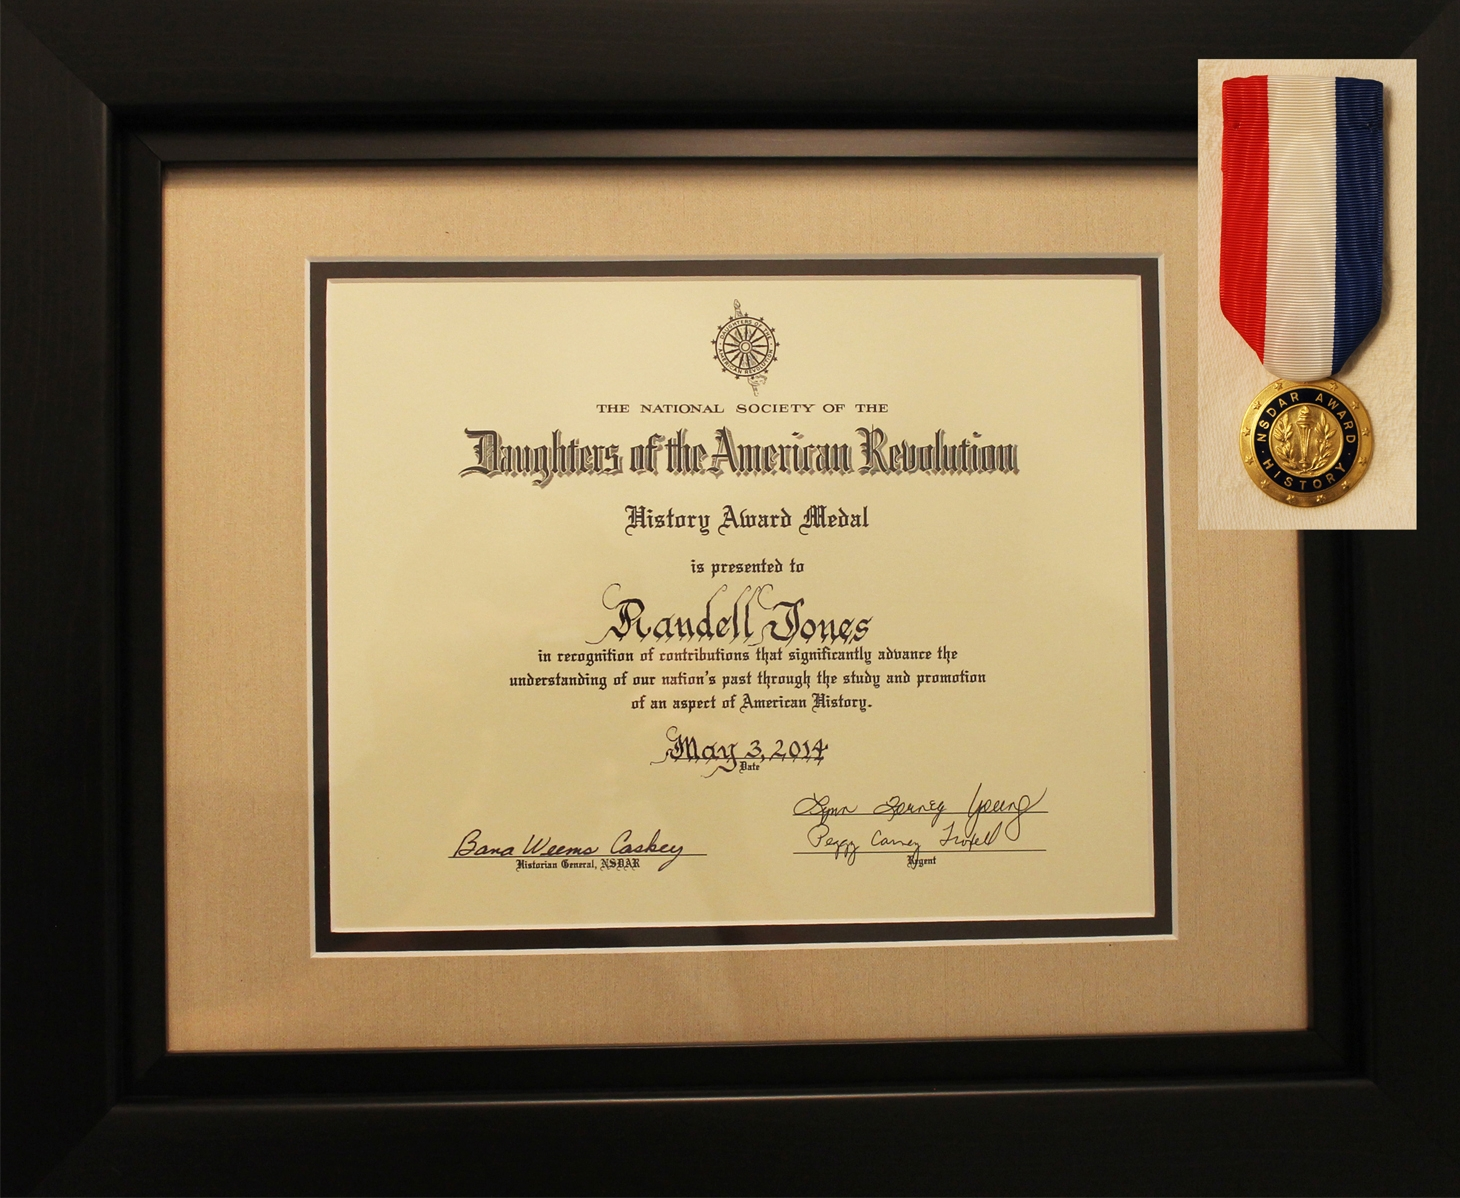 History Award Medal from the National Society, Daughters of the American Revolution for Randell's body of work - May 3, 2014.